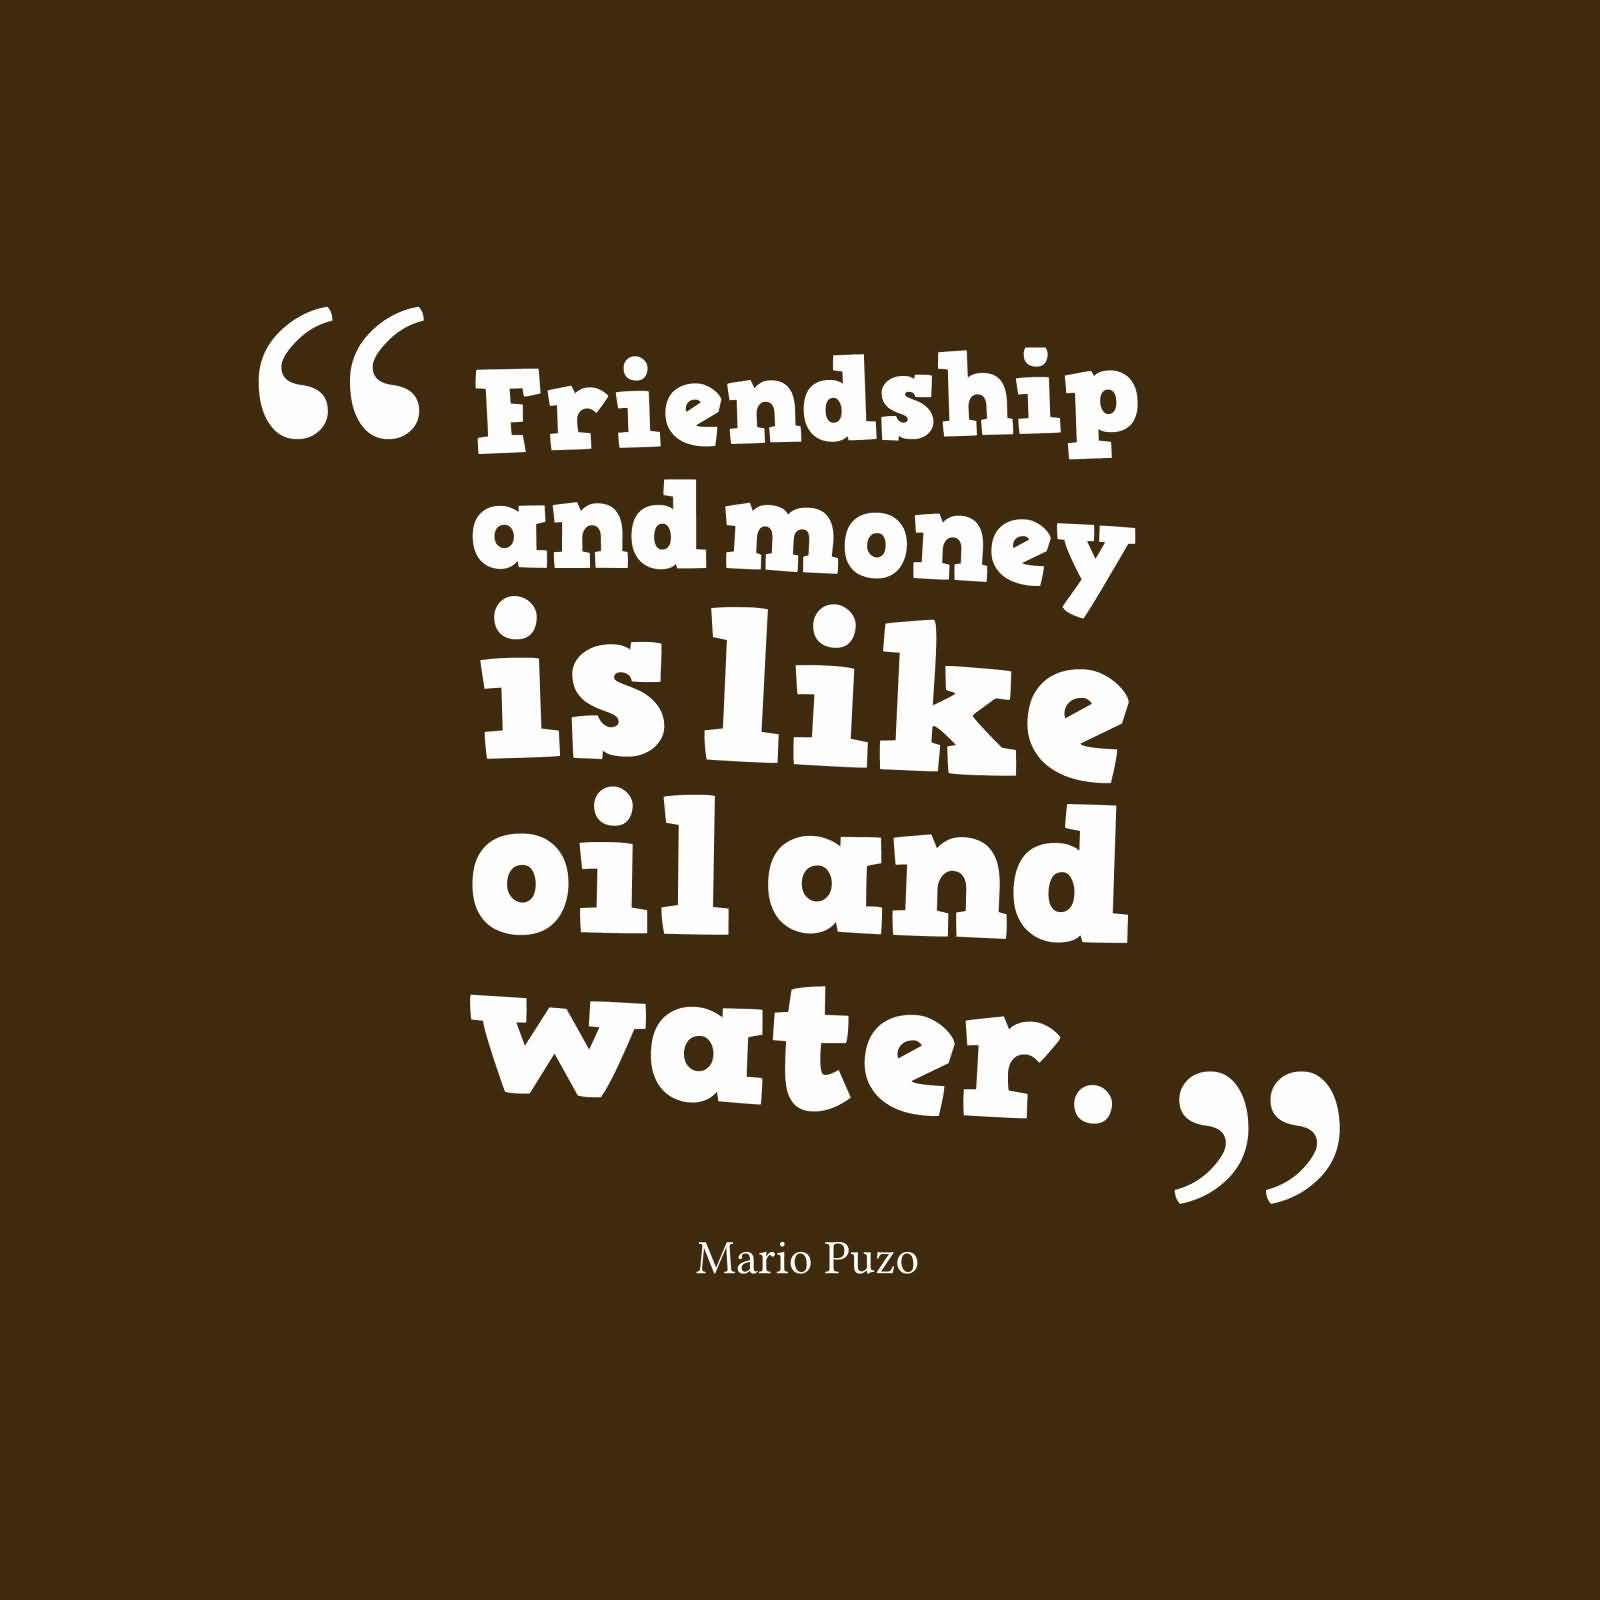 Quotes About Destroyed Friendship Quotes About Friendship Ruinedmoney Friendship Quotes